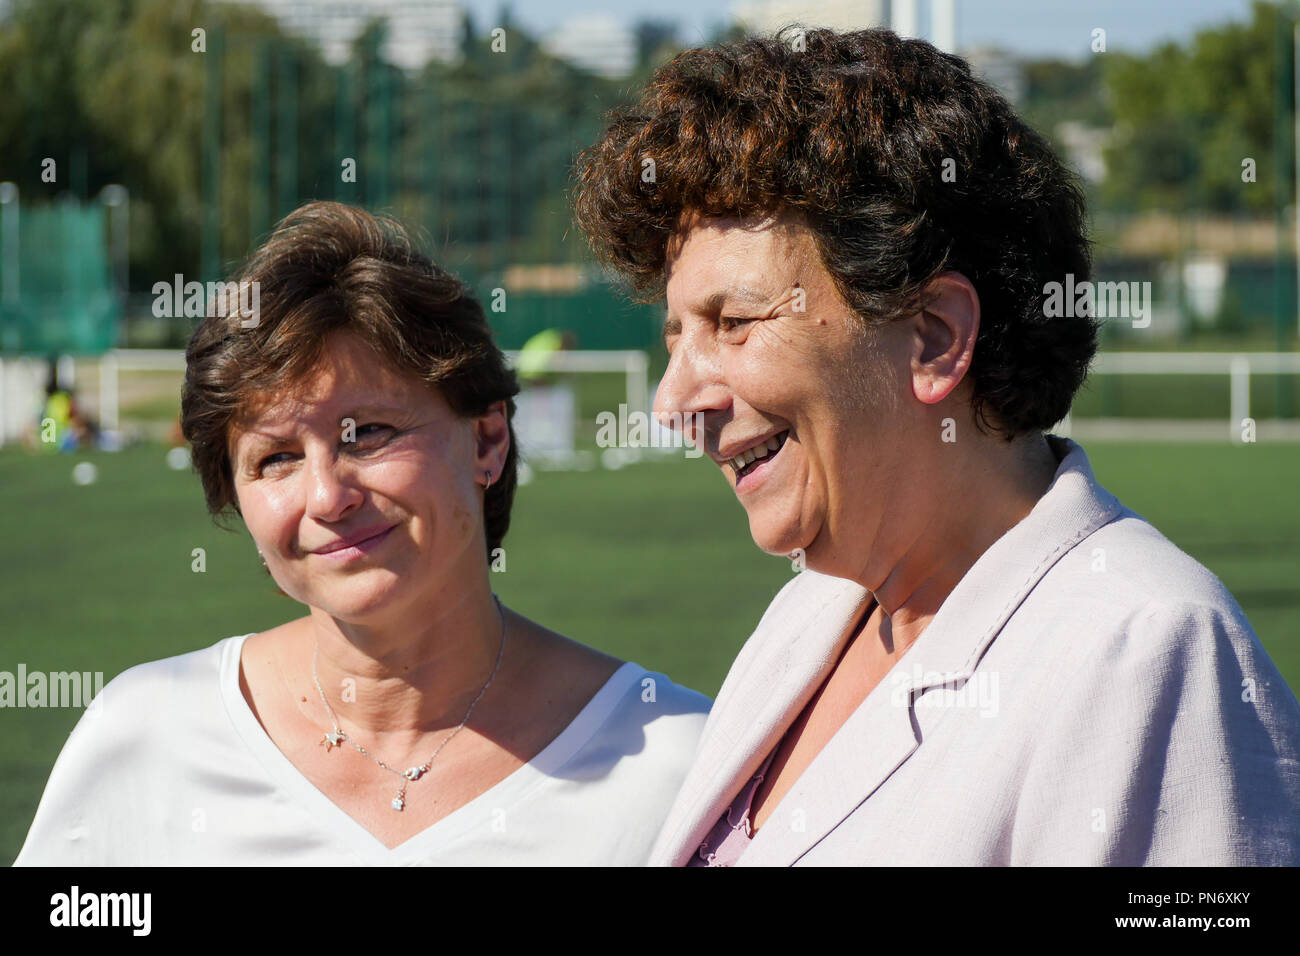 Villeurbanne, France, September 20th, 2018: Accompanied by Frederique Vidal, Minister for Higher Education, former swimming champions and newly promoted Minister of Sports, Roxana Maracineanu is seen at INSA and STAPS High Schools in Villeurbanne, near Lyon (Central-Eastern France) on september 20, 2018, as she meets members of the Organization Comity of Olympic Games and French Federation of Sports, students and champions, on the occasion of the official launching of Generation 2014 label for Universities. Credit photo: Serge Mouraret/Alamy Live News Stock Photo